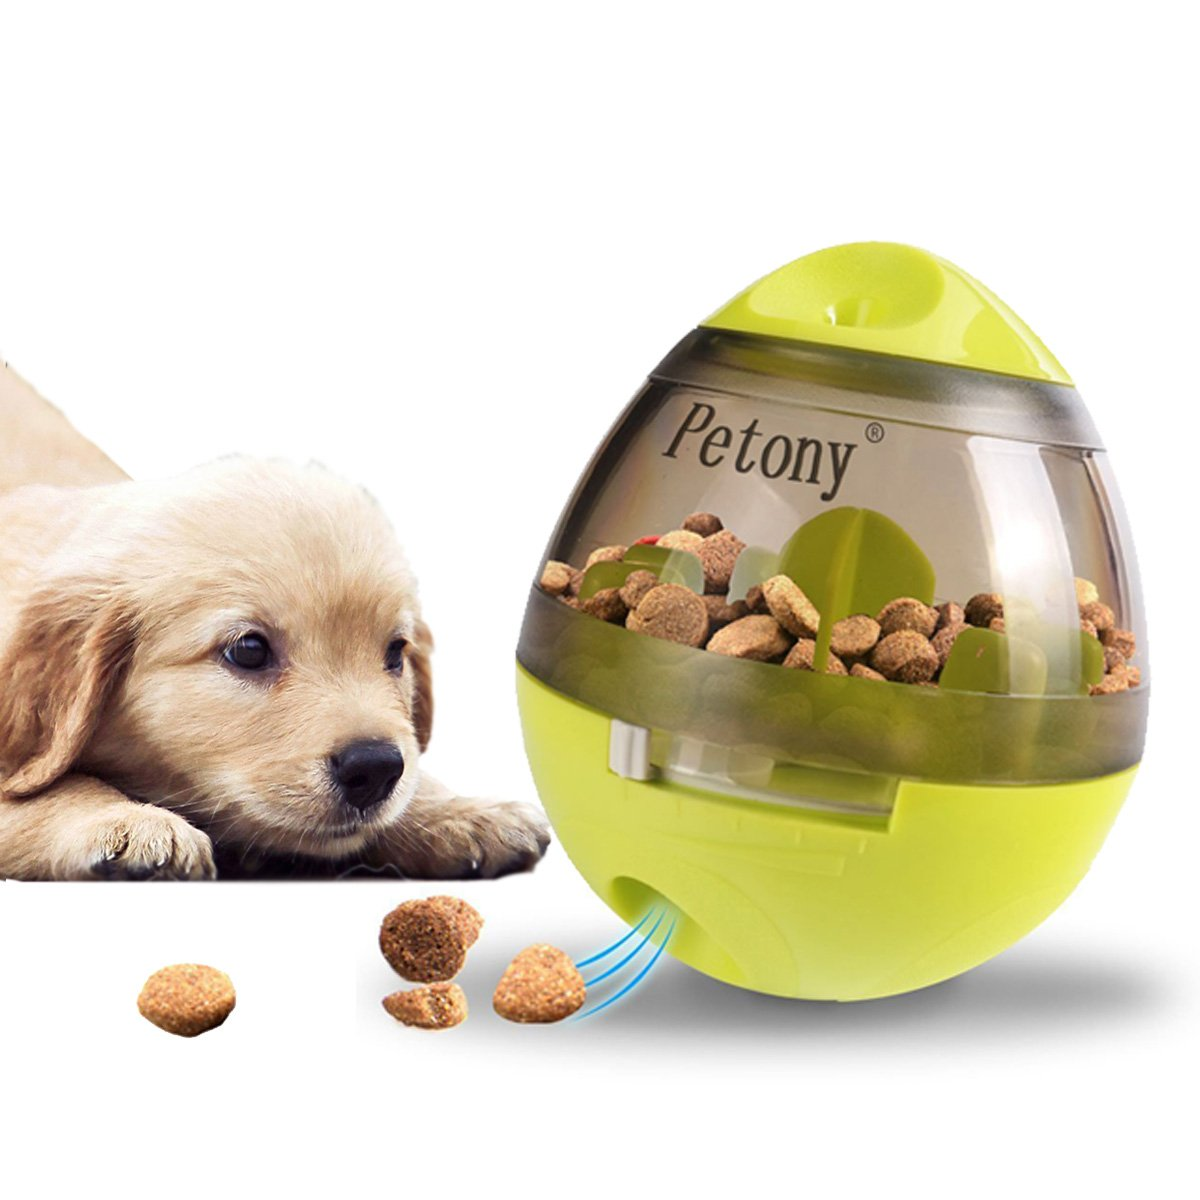 Petony Dog Food Treat Ball Toys with Holes Dispenser Cute Green IQ Puzzle Feeding Ball Toys Size: 4.7x3.9x3.9 inches